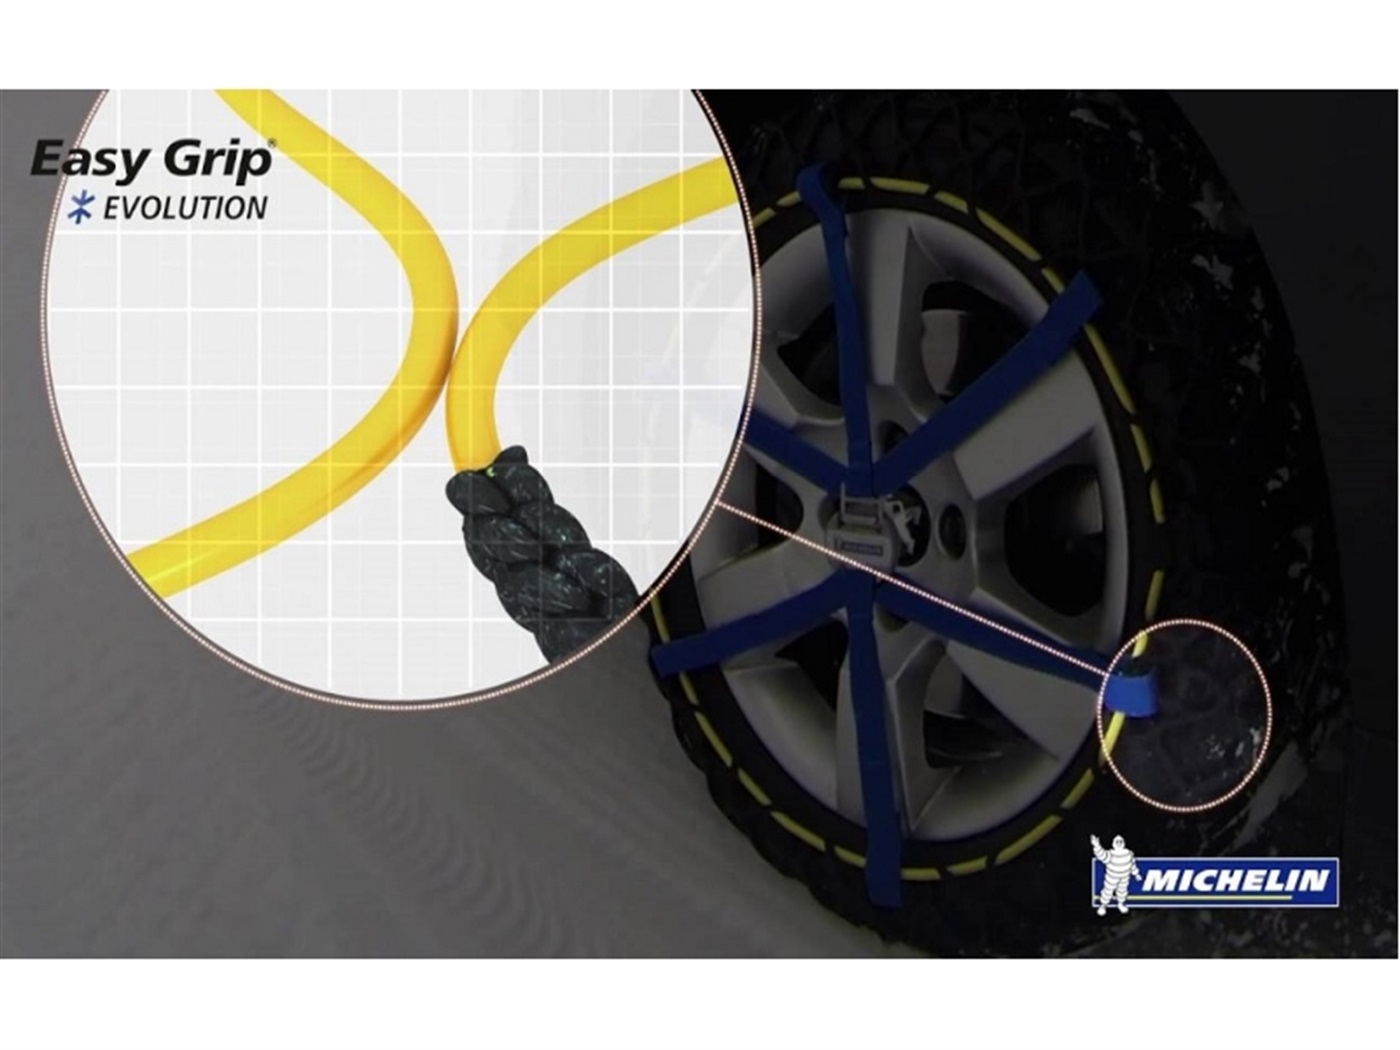 michelin  easy  grip  evolution   5